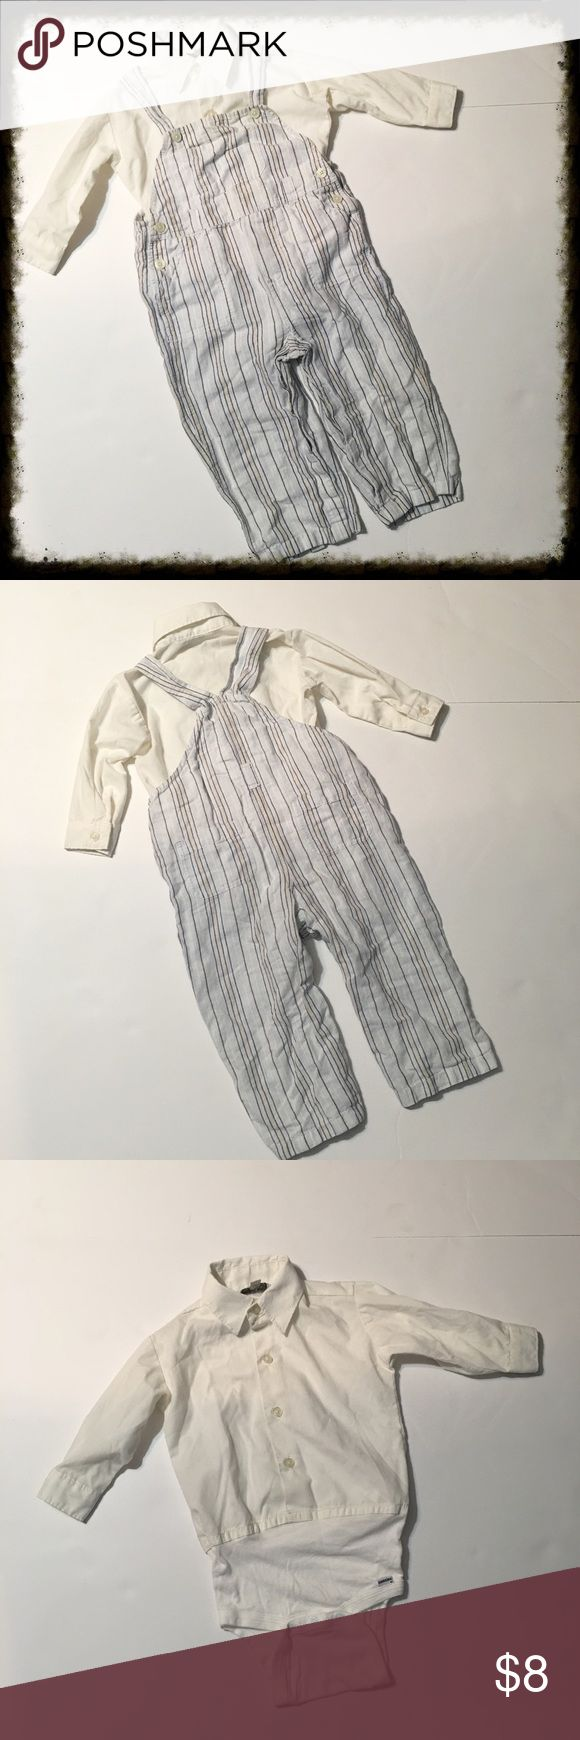 Baby Gap Linen Overalls with Button Down Onesie BabyGap light blue overalls are 55% linen 45% cotton. Machine washable. The white undershirt is a button-down with long sleeves and a onesie snap bottom. Overalls are size 18-24 month. Shirt is size 24 month.  *15% off bundles (you may bundle items from this closet & my women's closet @poshmishmosh) *No trades *Feel free to make an offer *Happy poshing 😊 Matching Sets